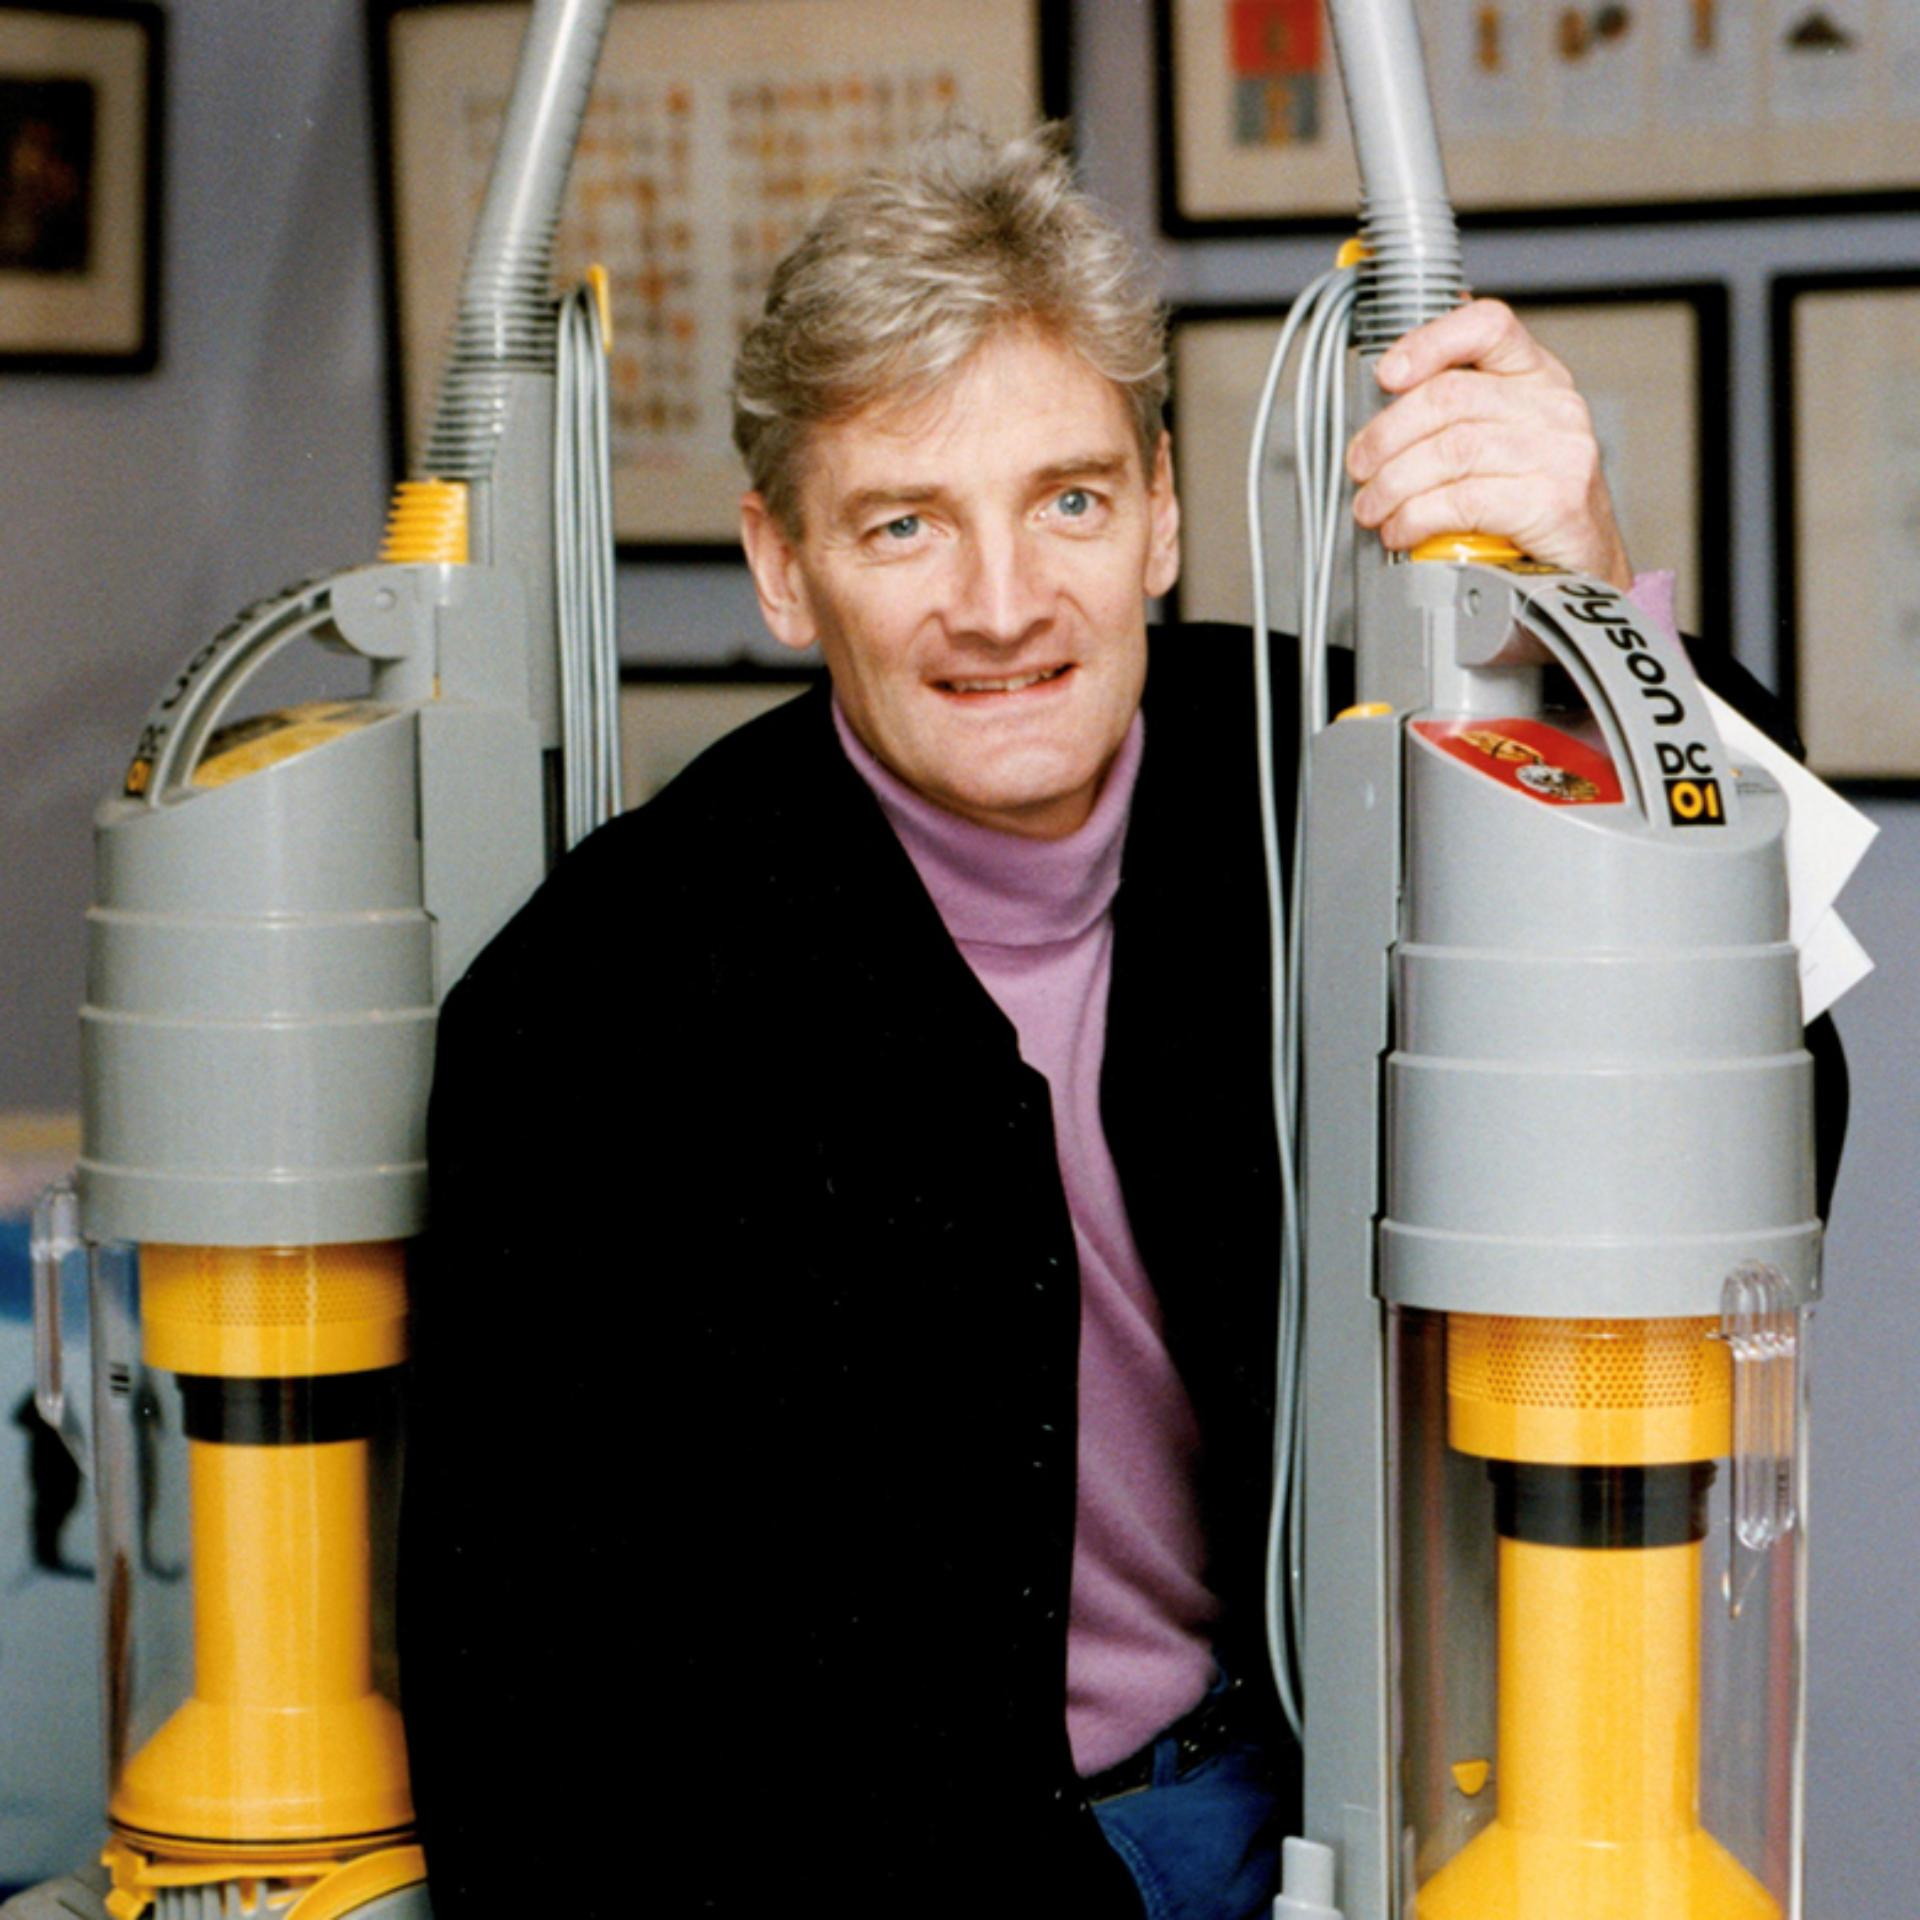 James Dyson photographed with DC01s in 1993